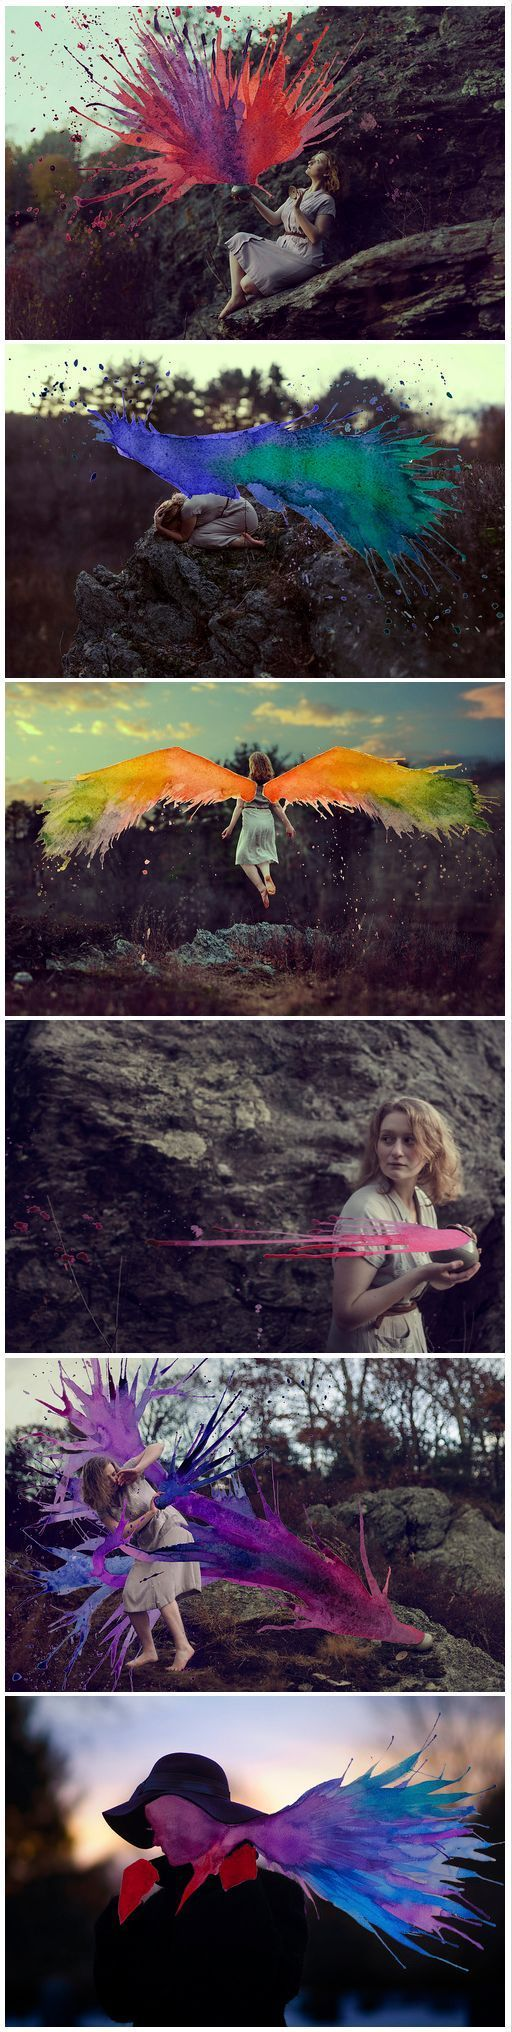 Mixed Media Photography by Aliza Razell: